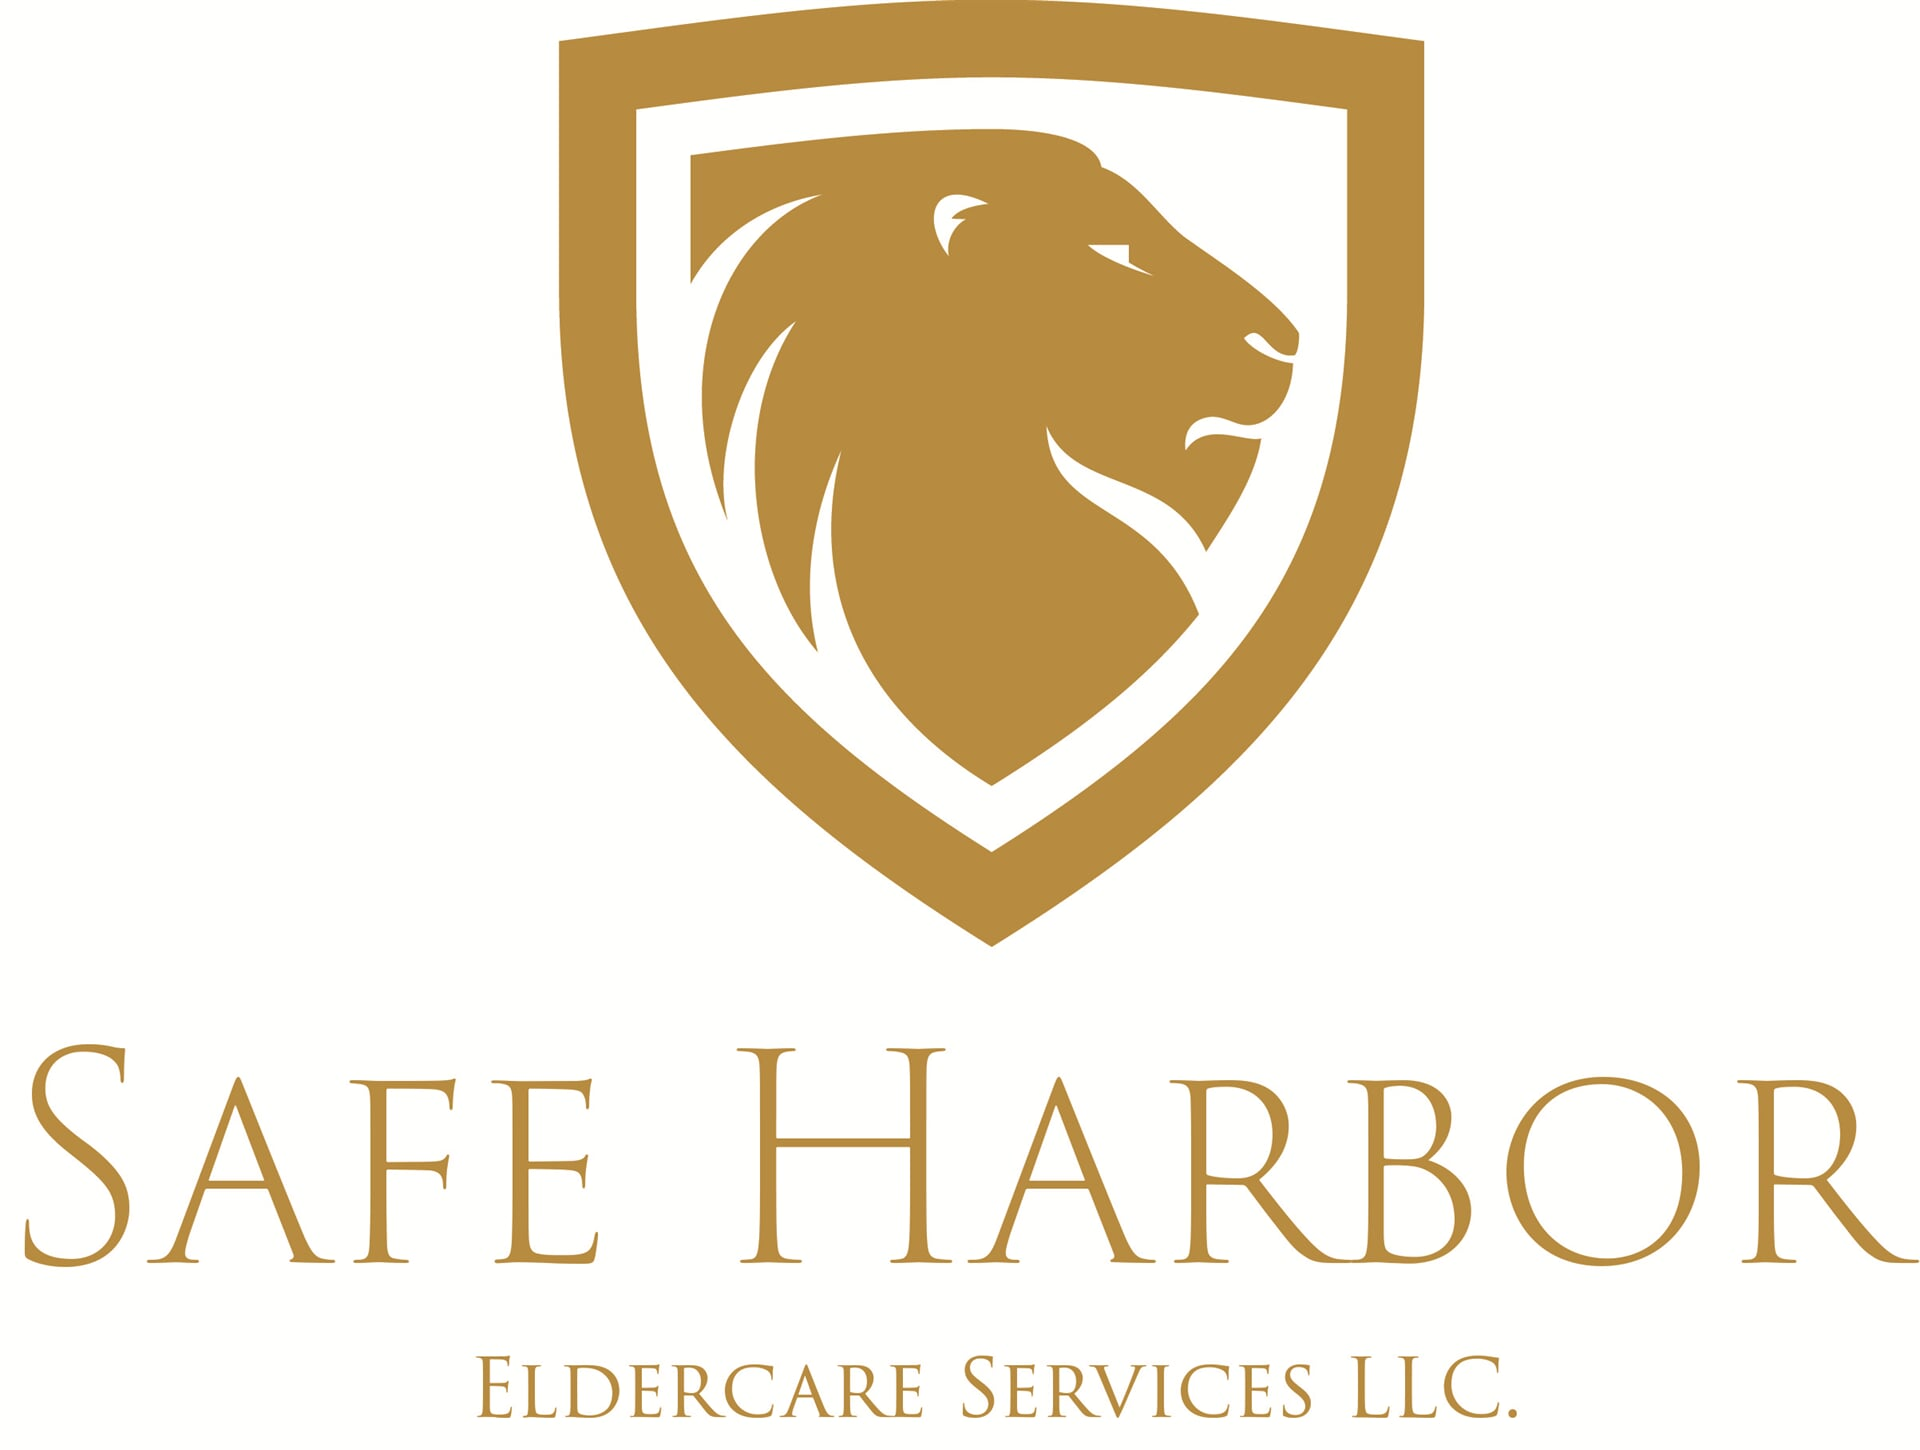 Safe Harbor Elder Care Services, LLC